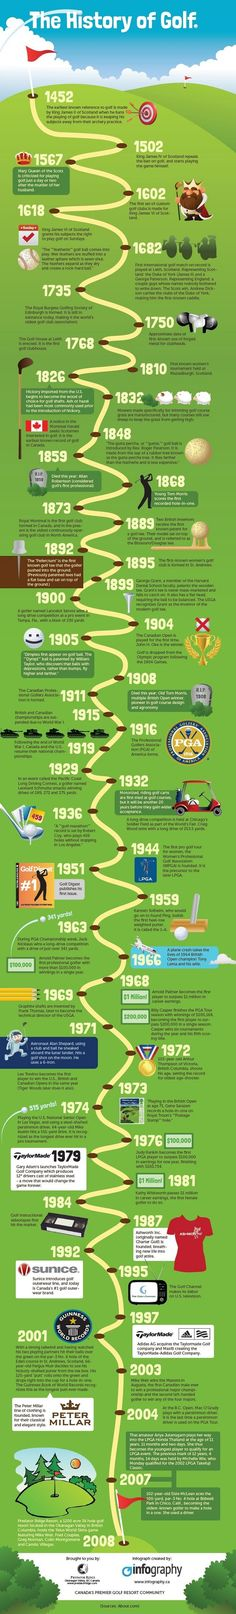 The history of golf!